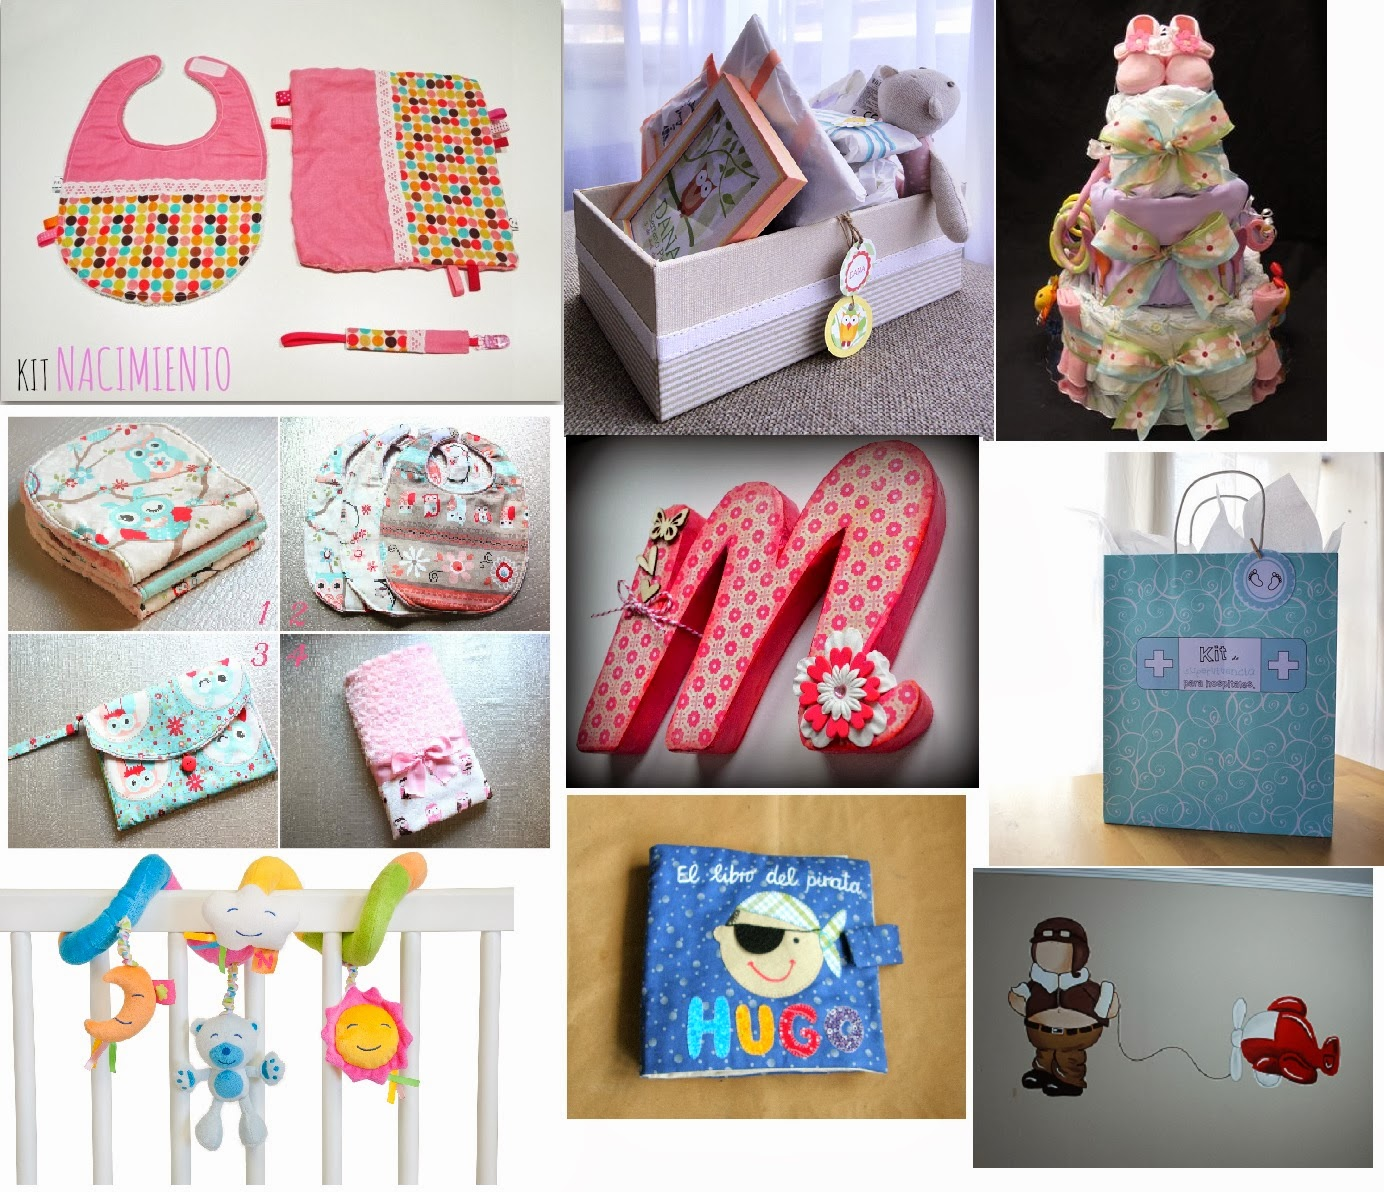 Tutoriales de manualidades supercrafty inspiraciones - Ideas para bebes ...